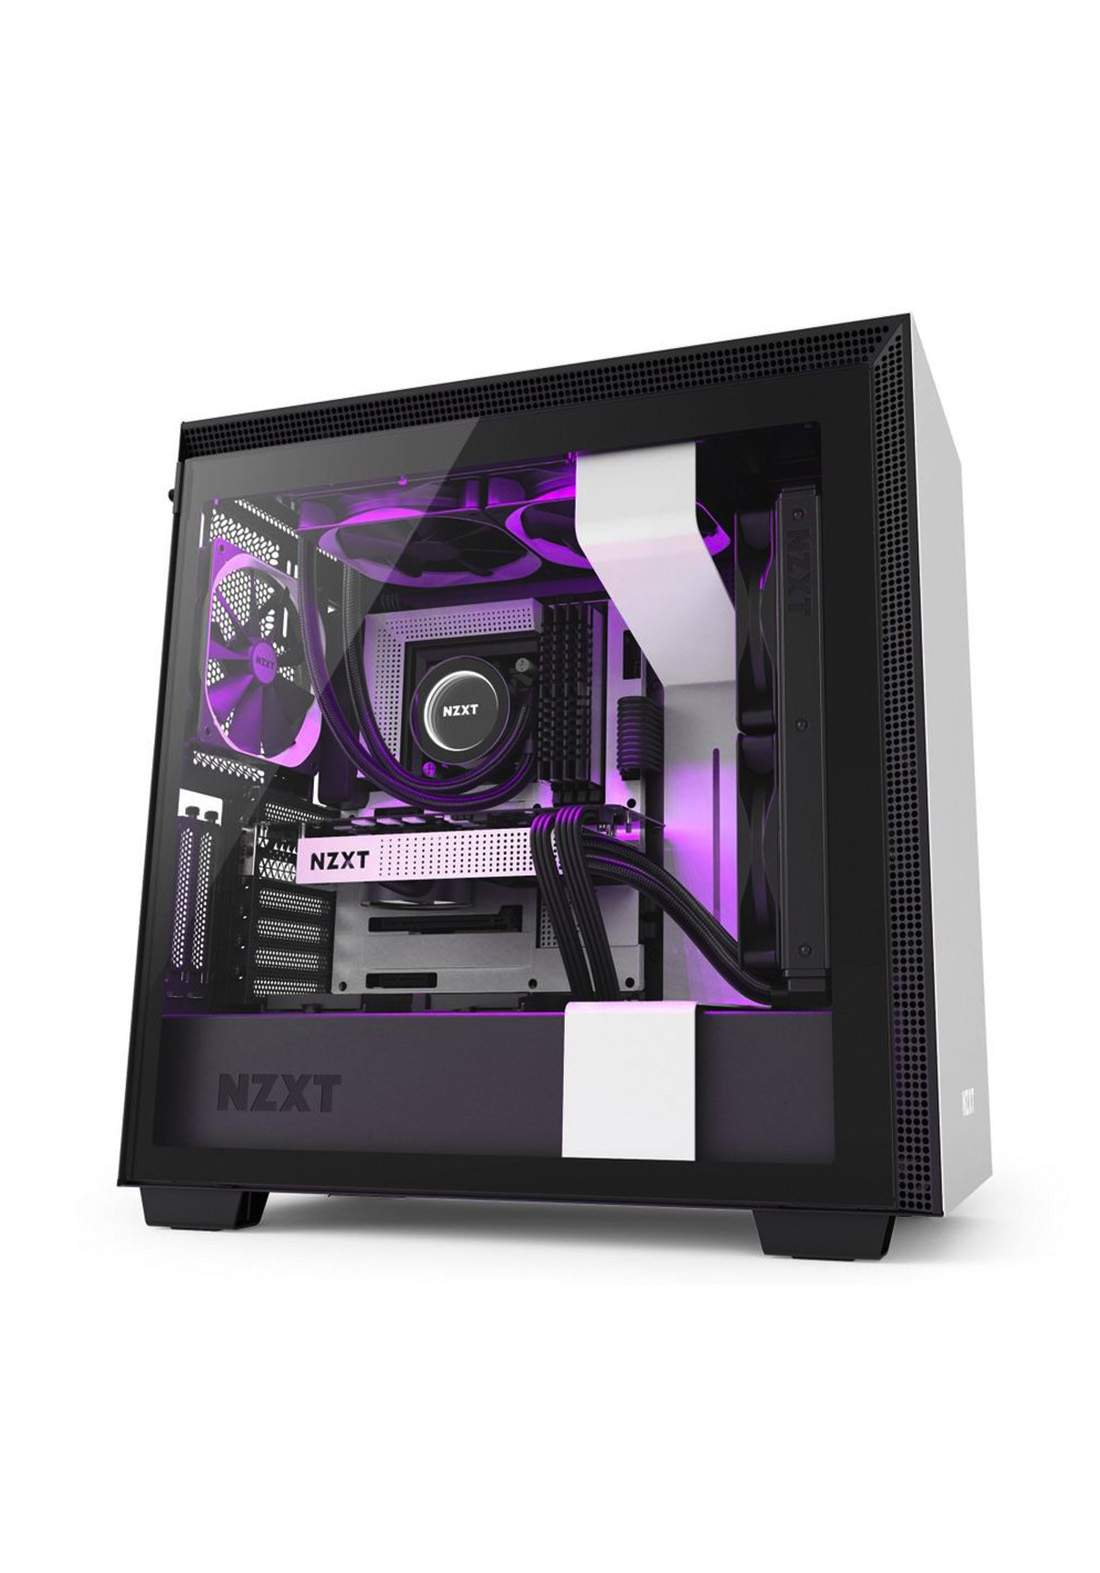 Nzxt H710i Atx Mid Tower Case كيس حاسبة